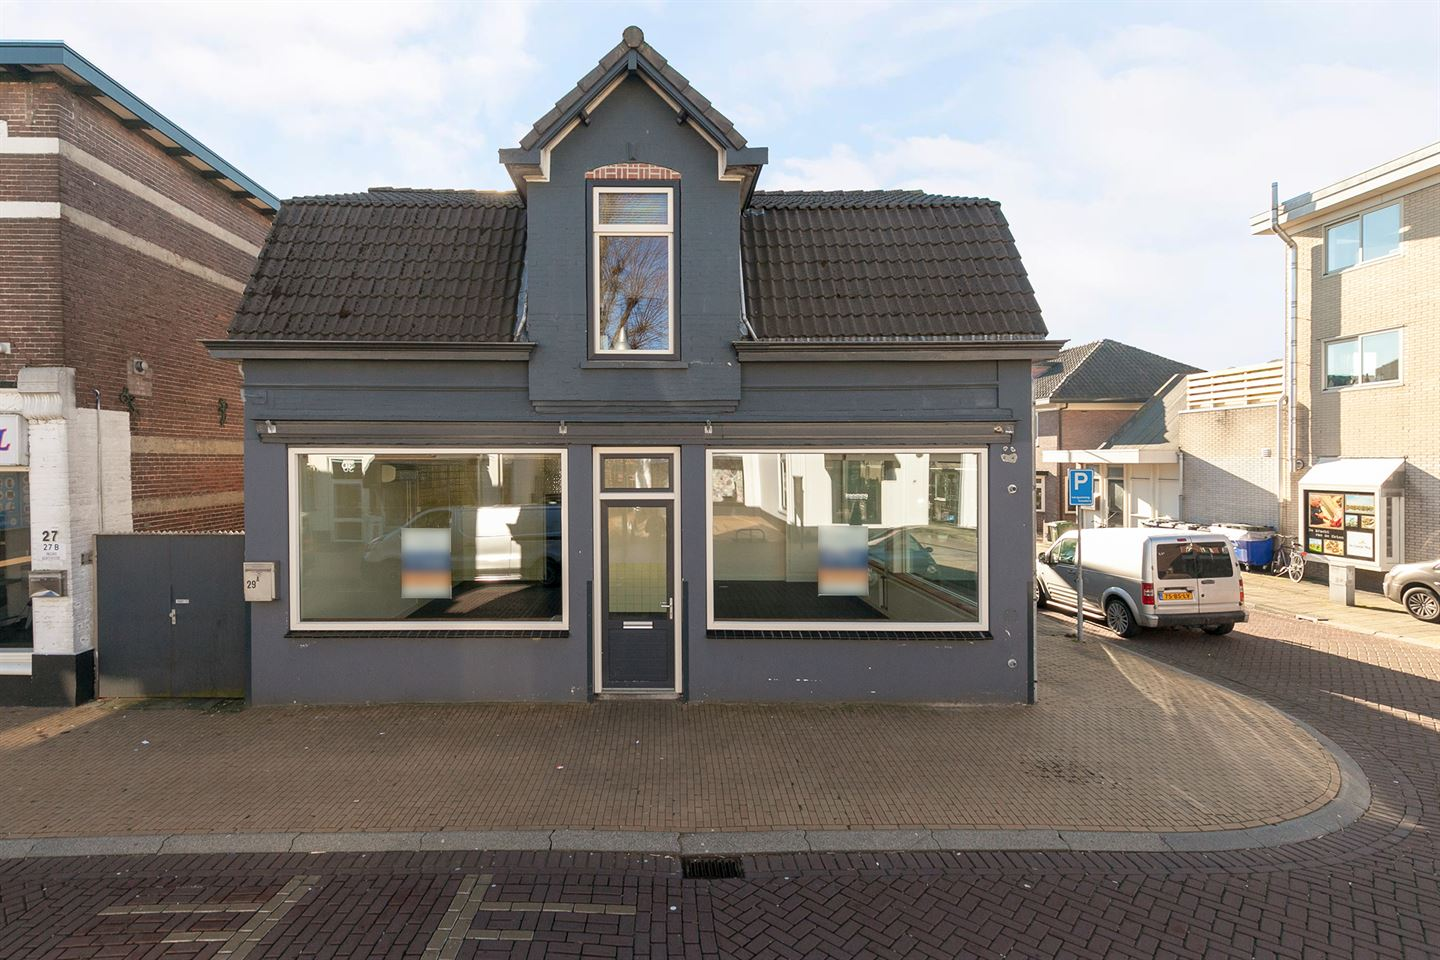 View photo 2 of Asselsestraat 29 B